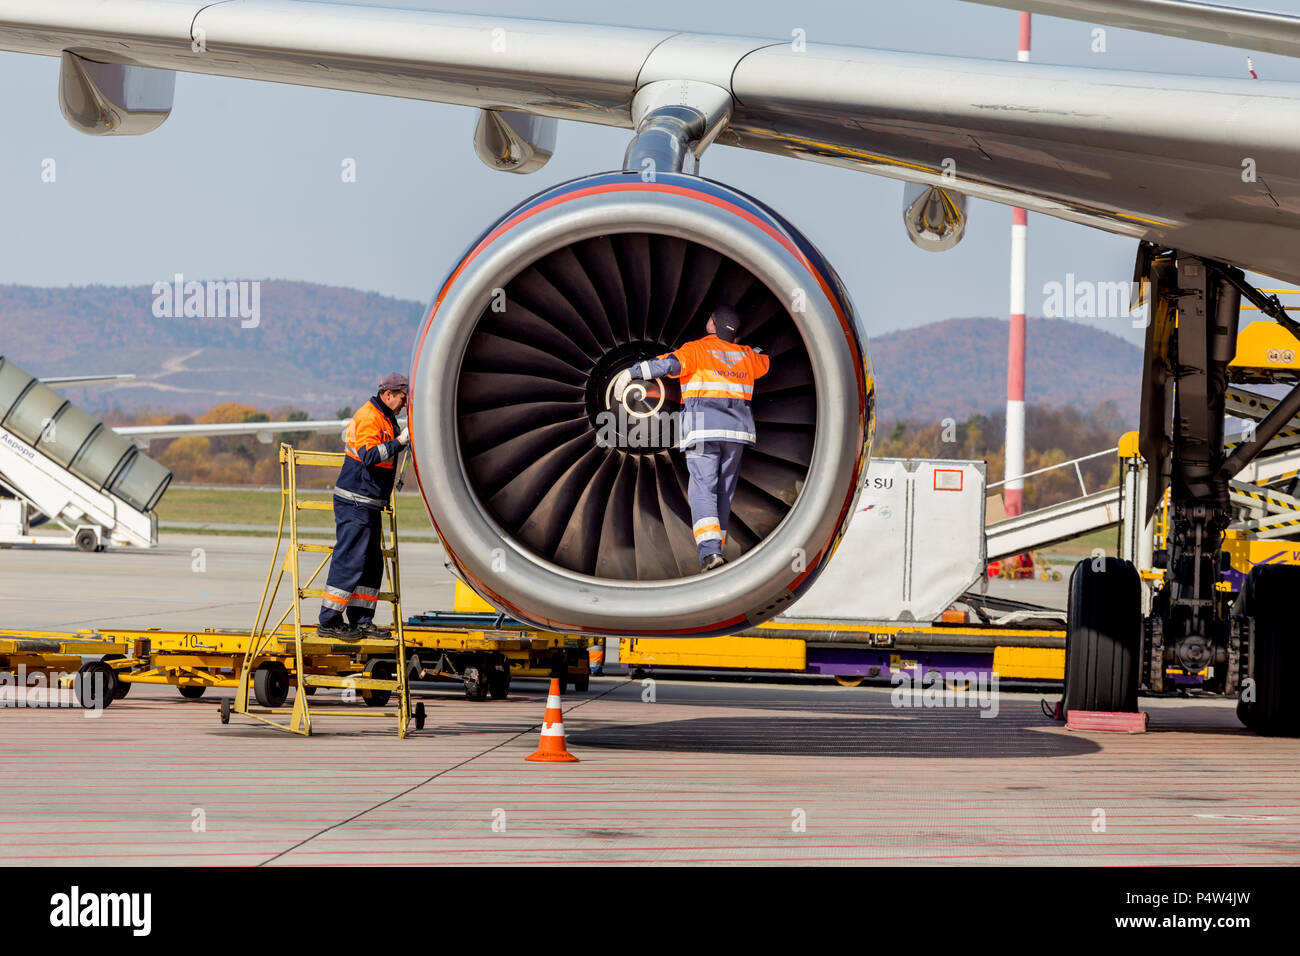 Russia, Vladivostok, 10/13/2017. Engineers check engine of jet aircraft after landing. Airbus A330 of Aeroflot Airlines. Aviation and equipment of air - Stock Image